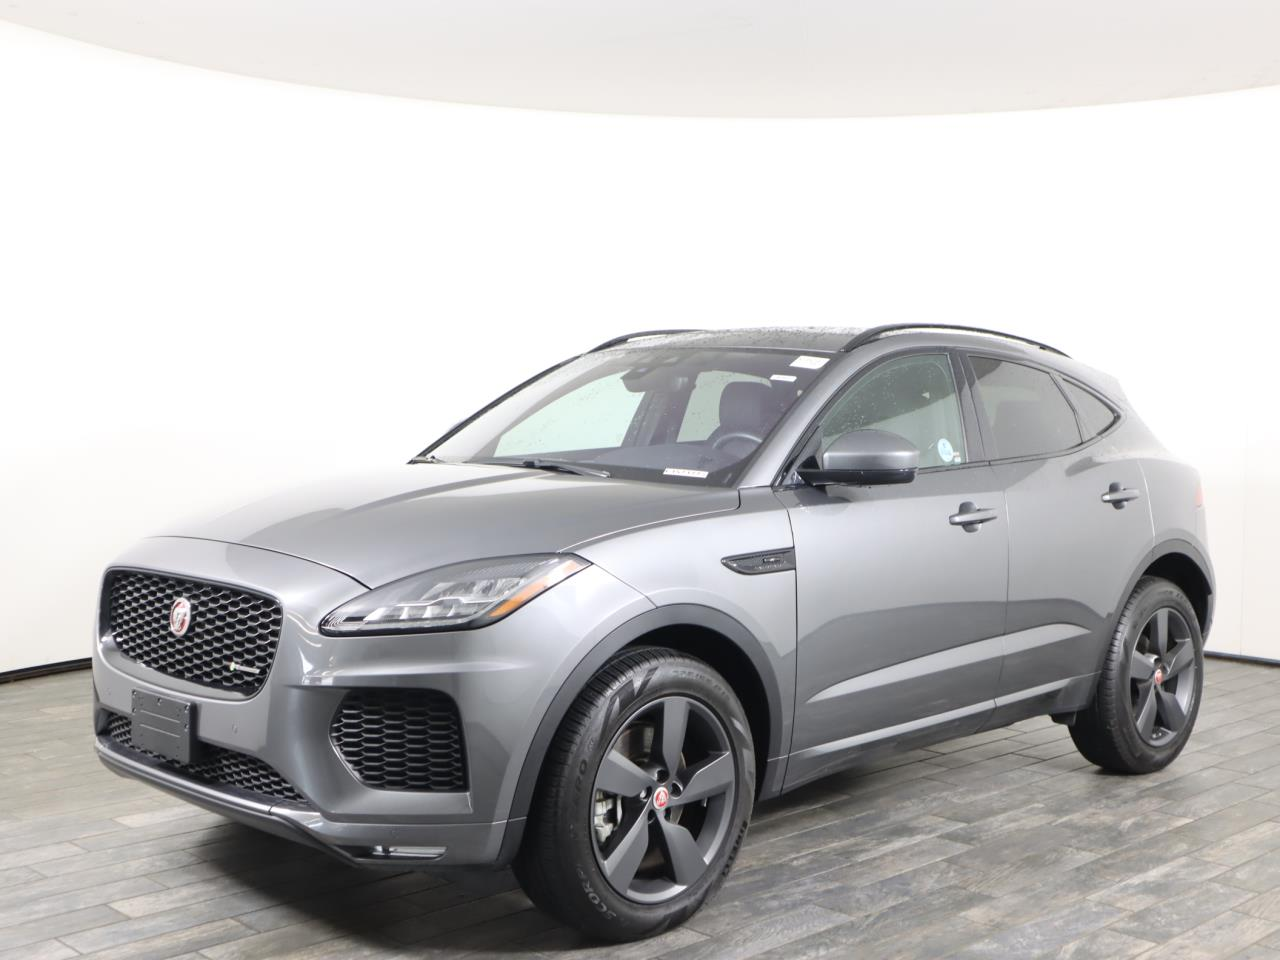 Certified Pre-Owned 2020 Jaguar E-PACE P250 AWD Checkered Flag Edition